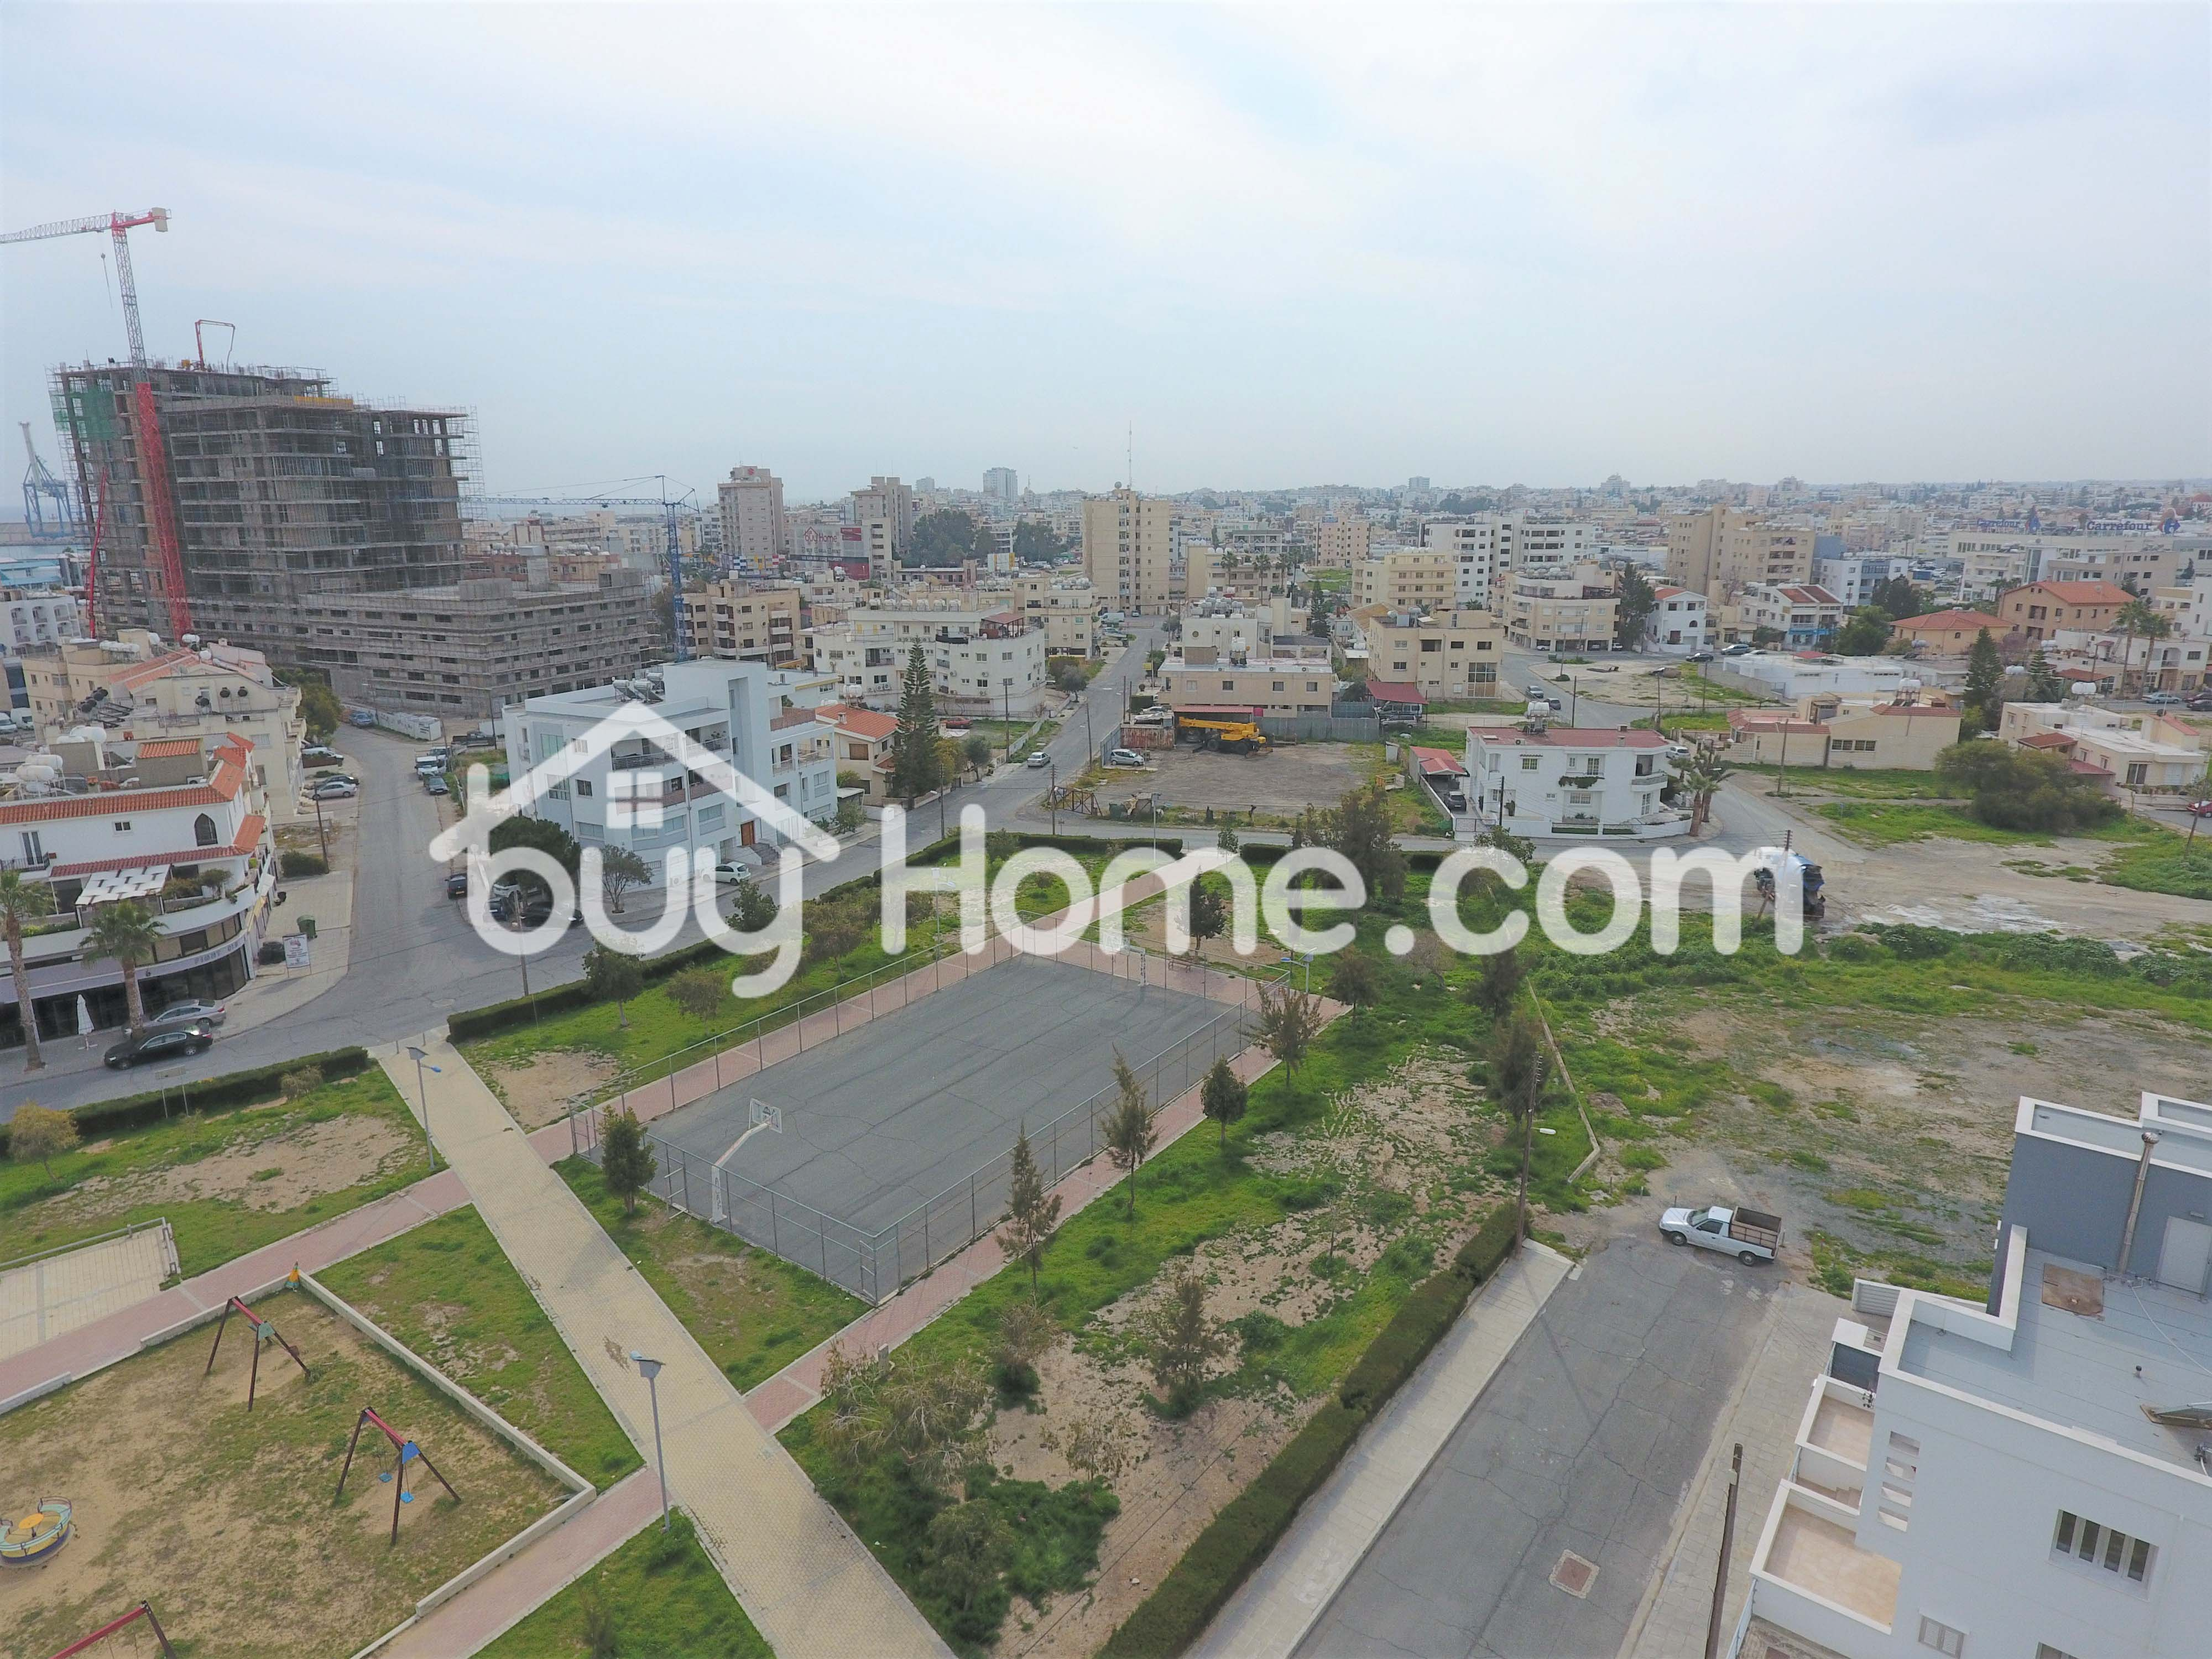 Plot Investment with business plan | BuyHome